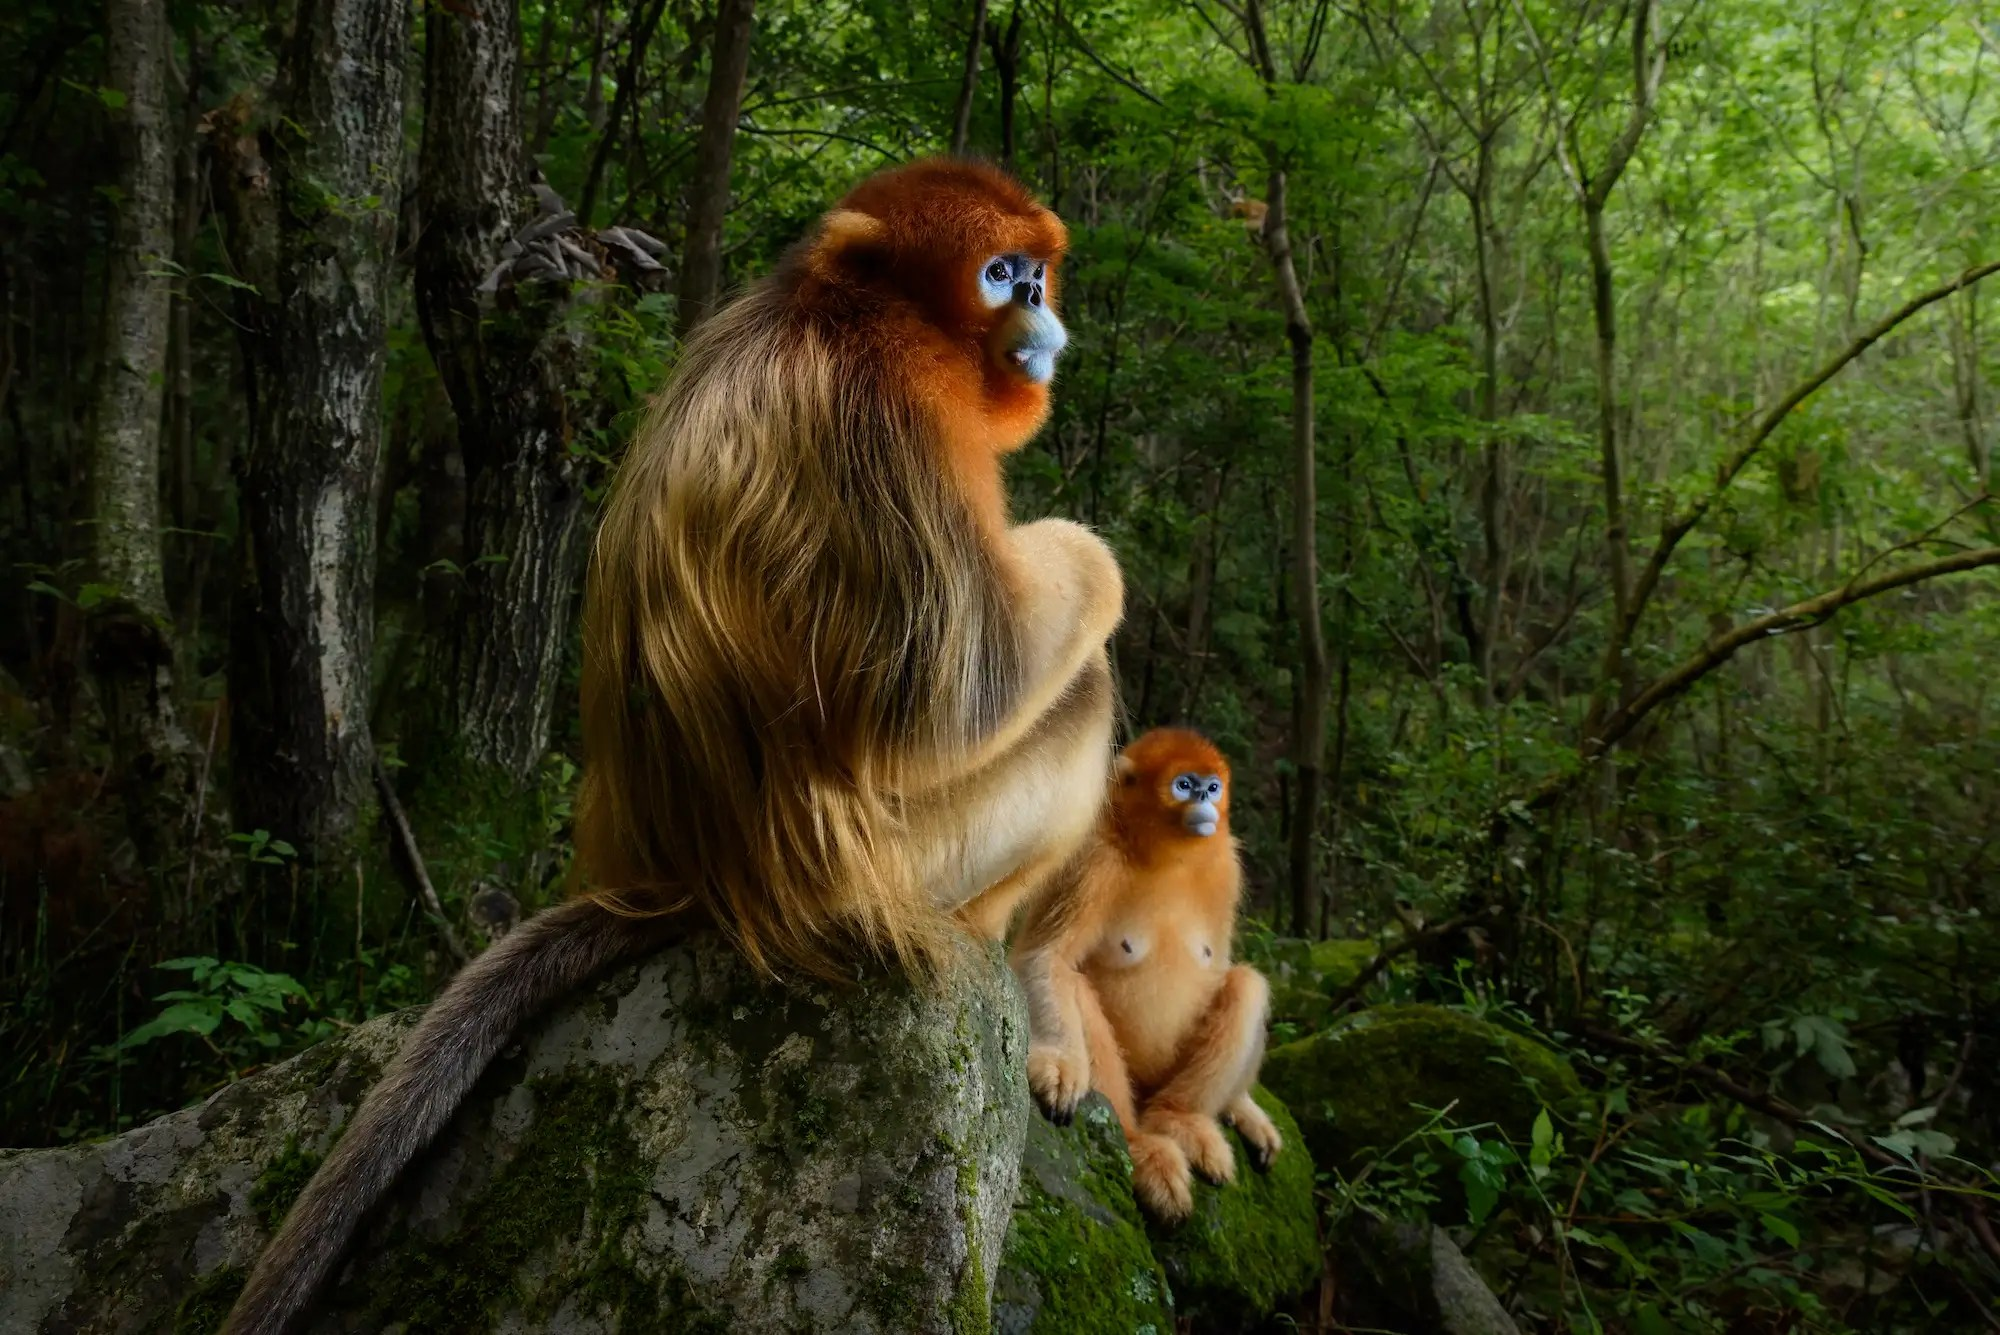 The most gorgeous wildlife photos of 2018 shine a light on nature's bizarre and wonderful beauty van oosten the grand prize winner is a professional nature photographer who runs a photography tour business with his wife he nabbed this photo of a golden couple in the qinling mountains of china